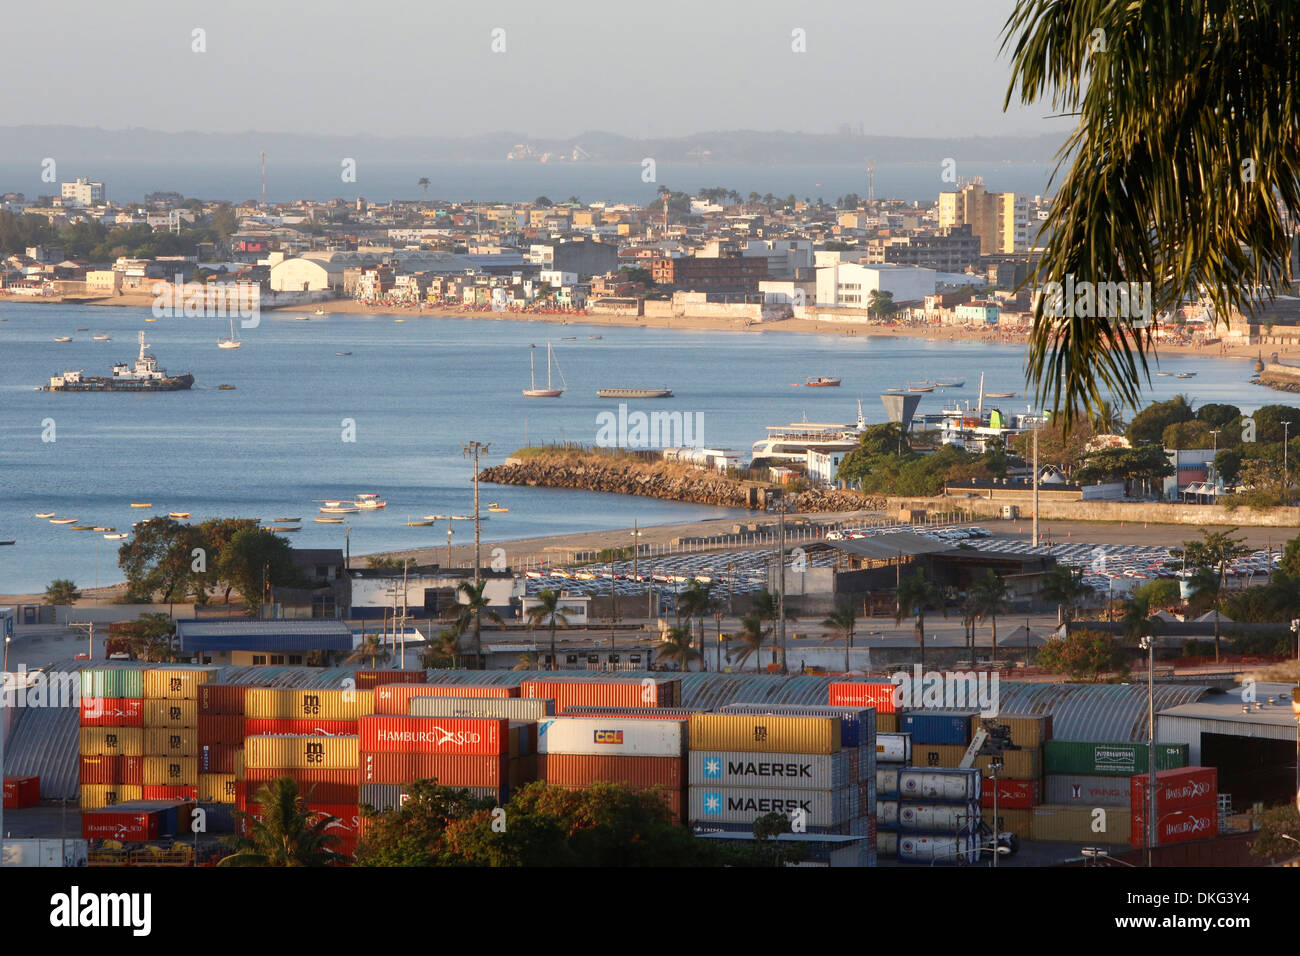 Cargo and ships in Salvador Bay, Salvador, Bahia, Brrazil, South America - Stock Image